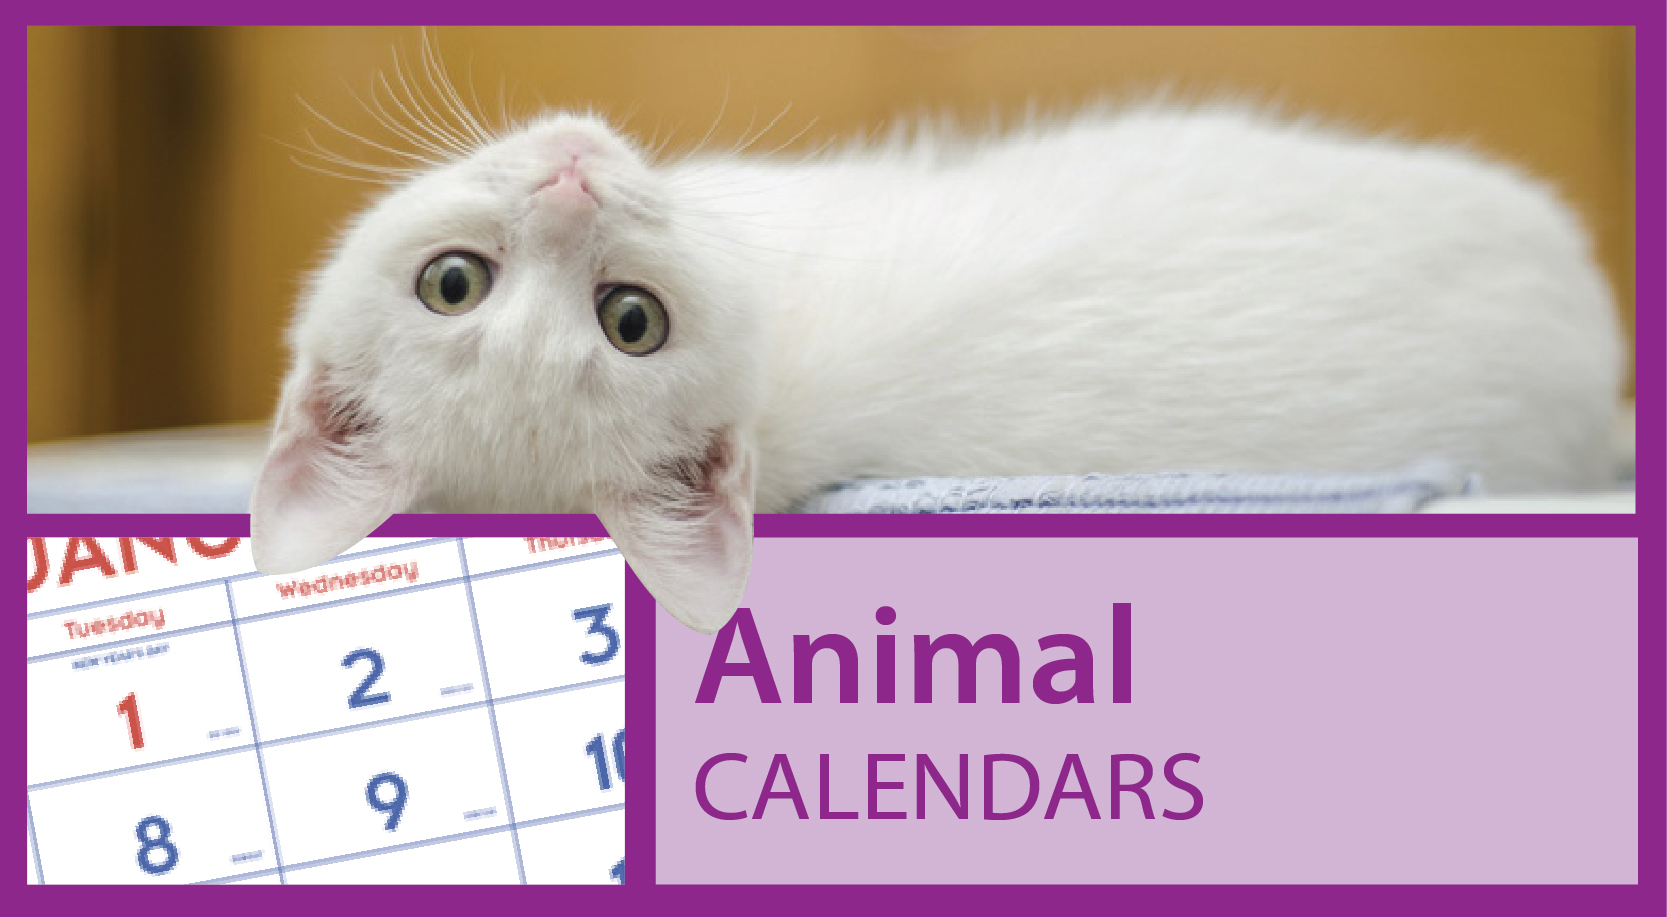 Promotional Animal Calendars https://www.valuecalendars.com/products/standard_imprinted_calendars/promotional_animal_calendars